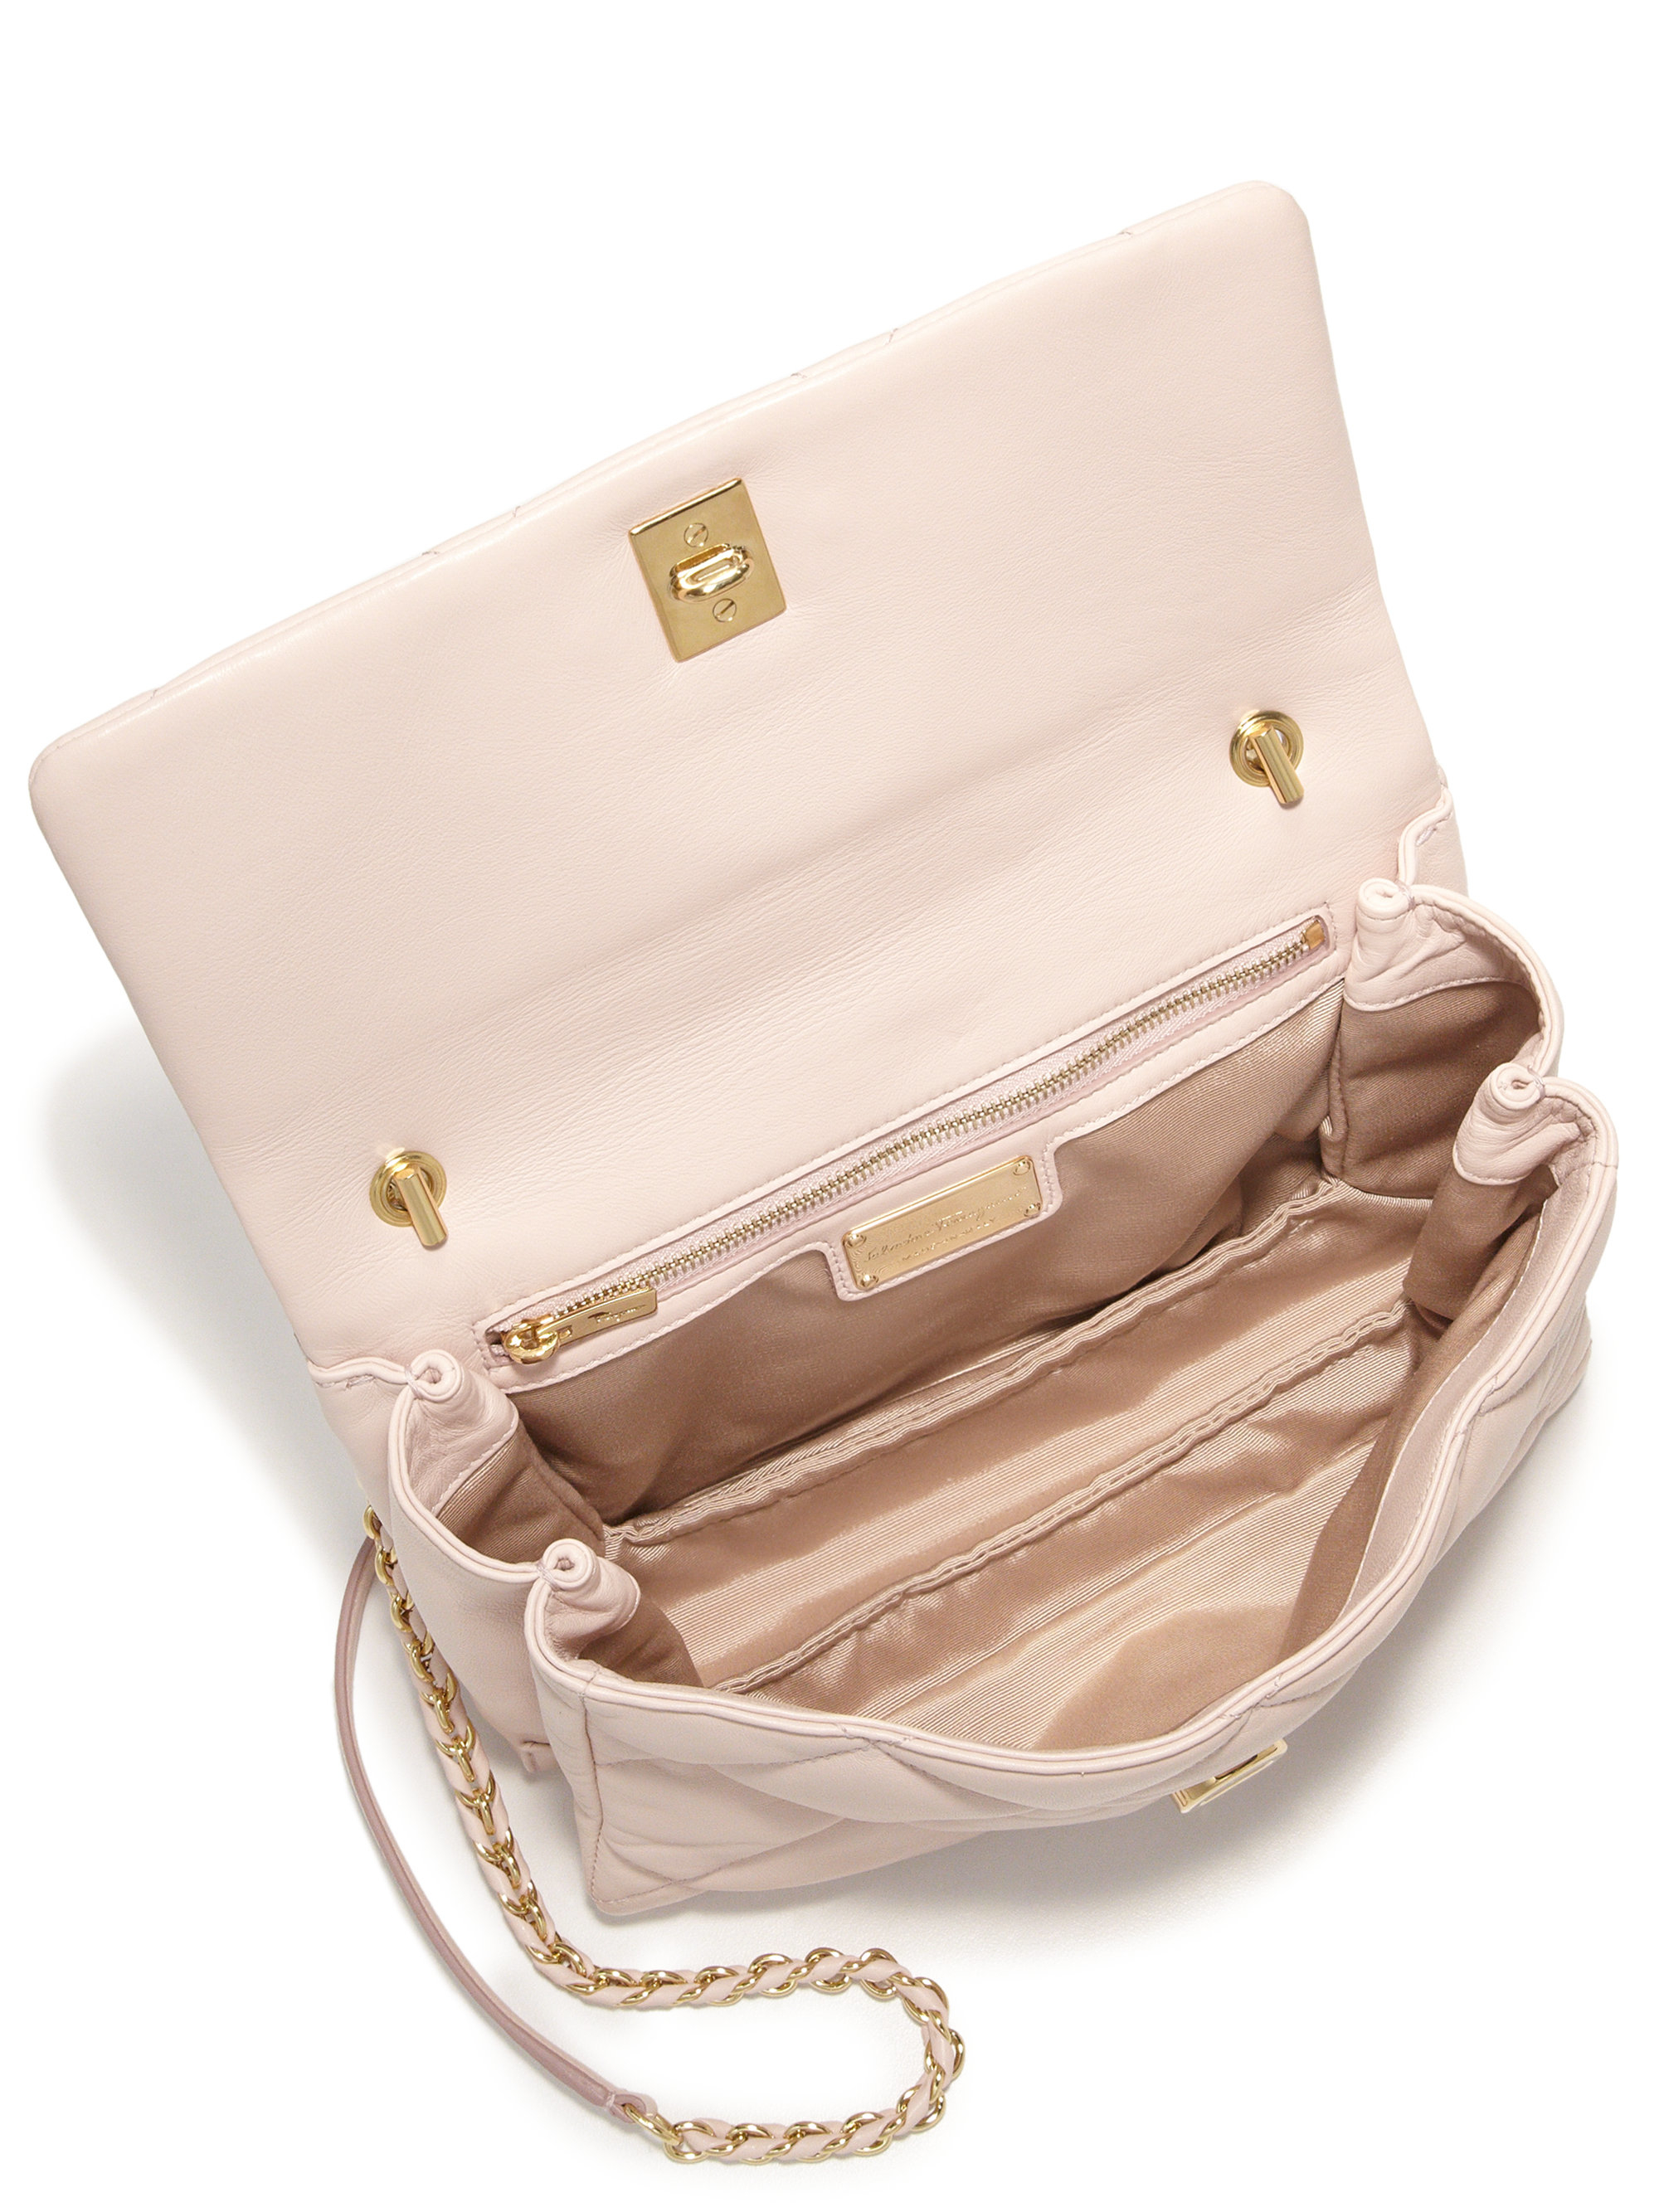 93f8a620b305 Lyst - Ferragamo Gelly Quilted Nappa Leather Shoulder Bag in Natural